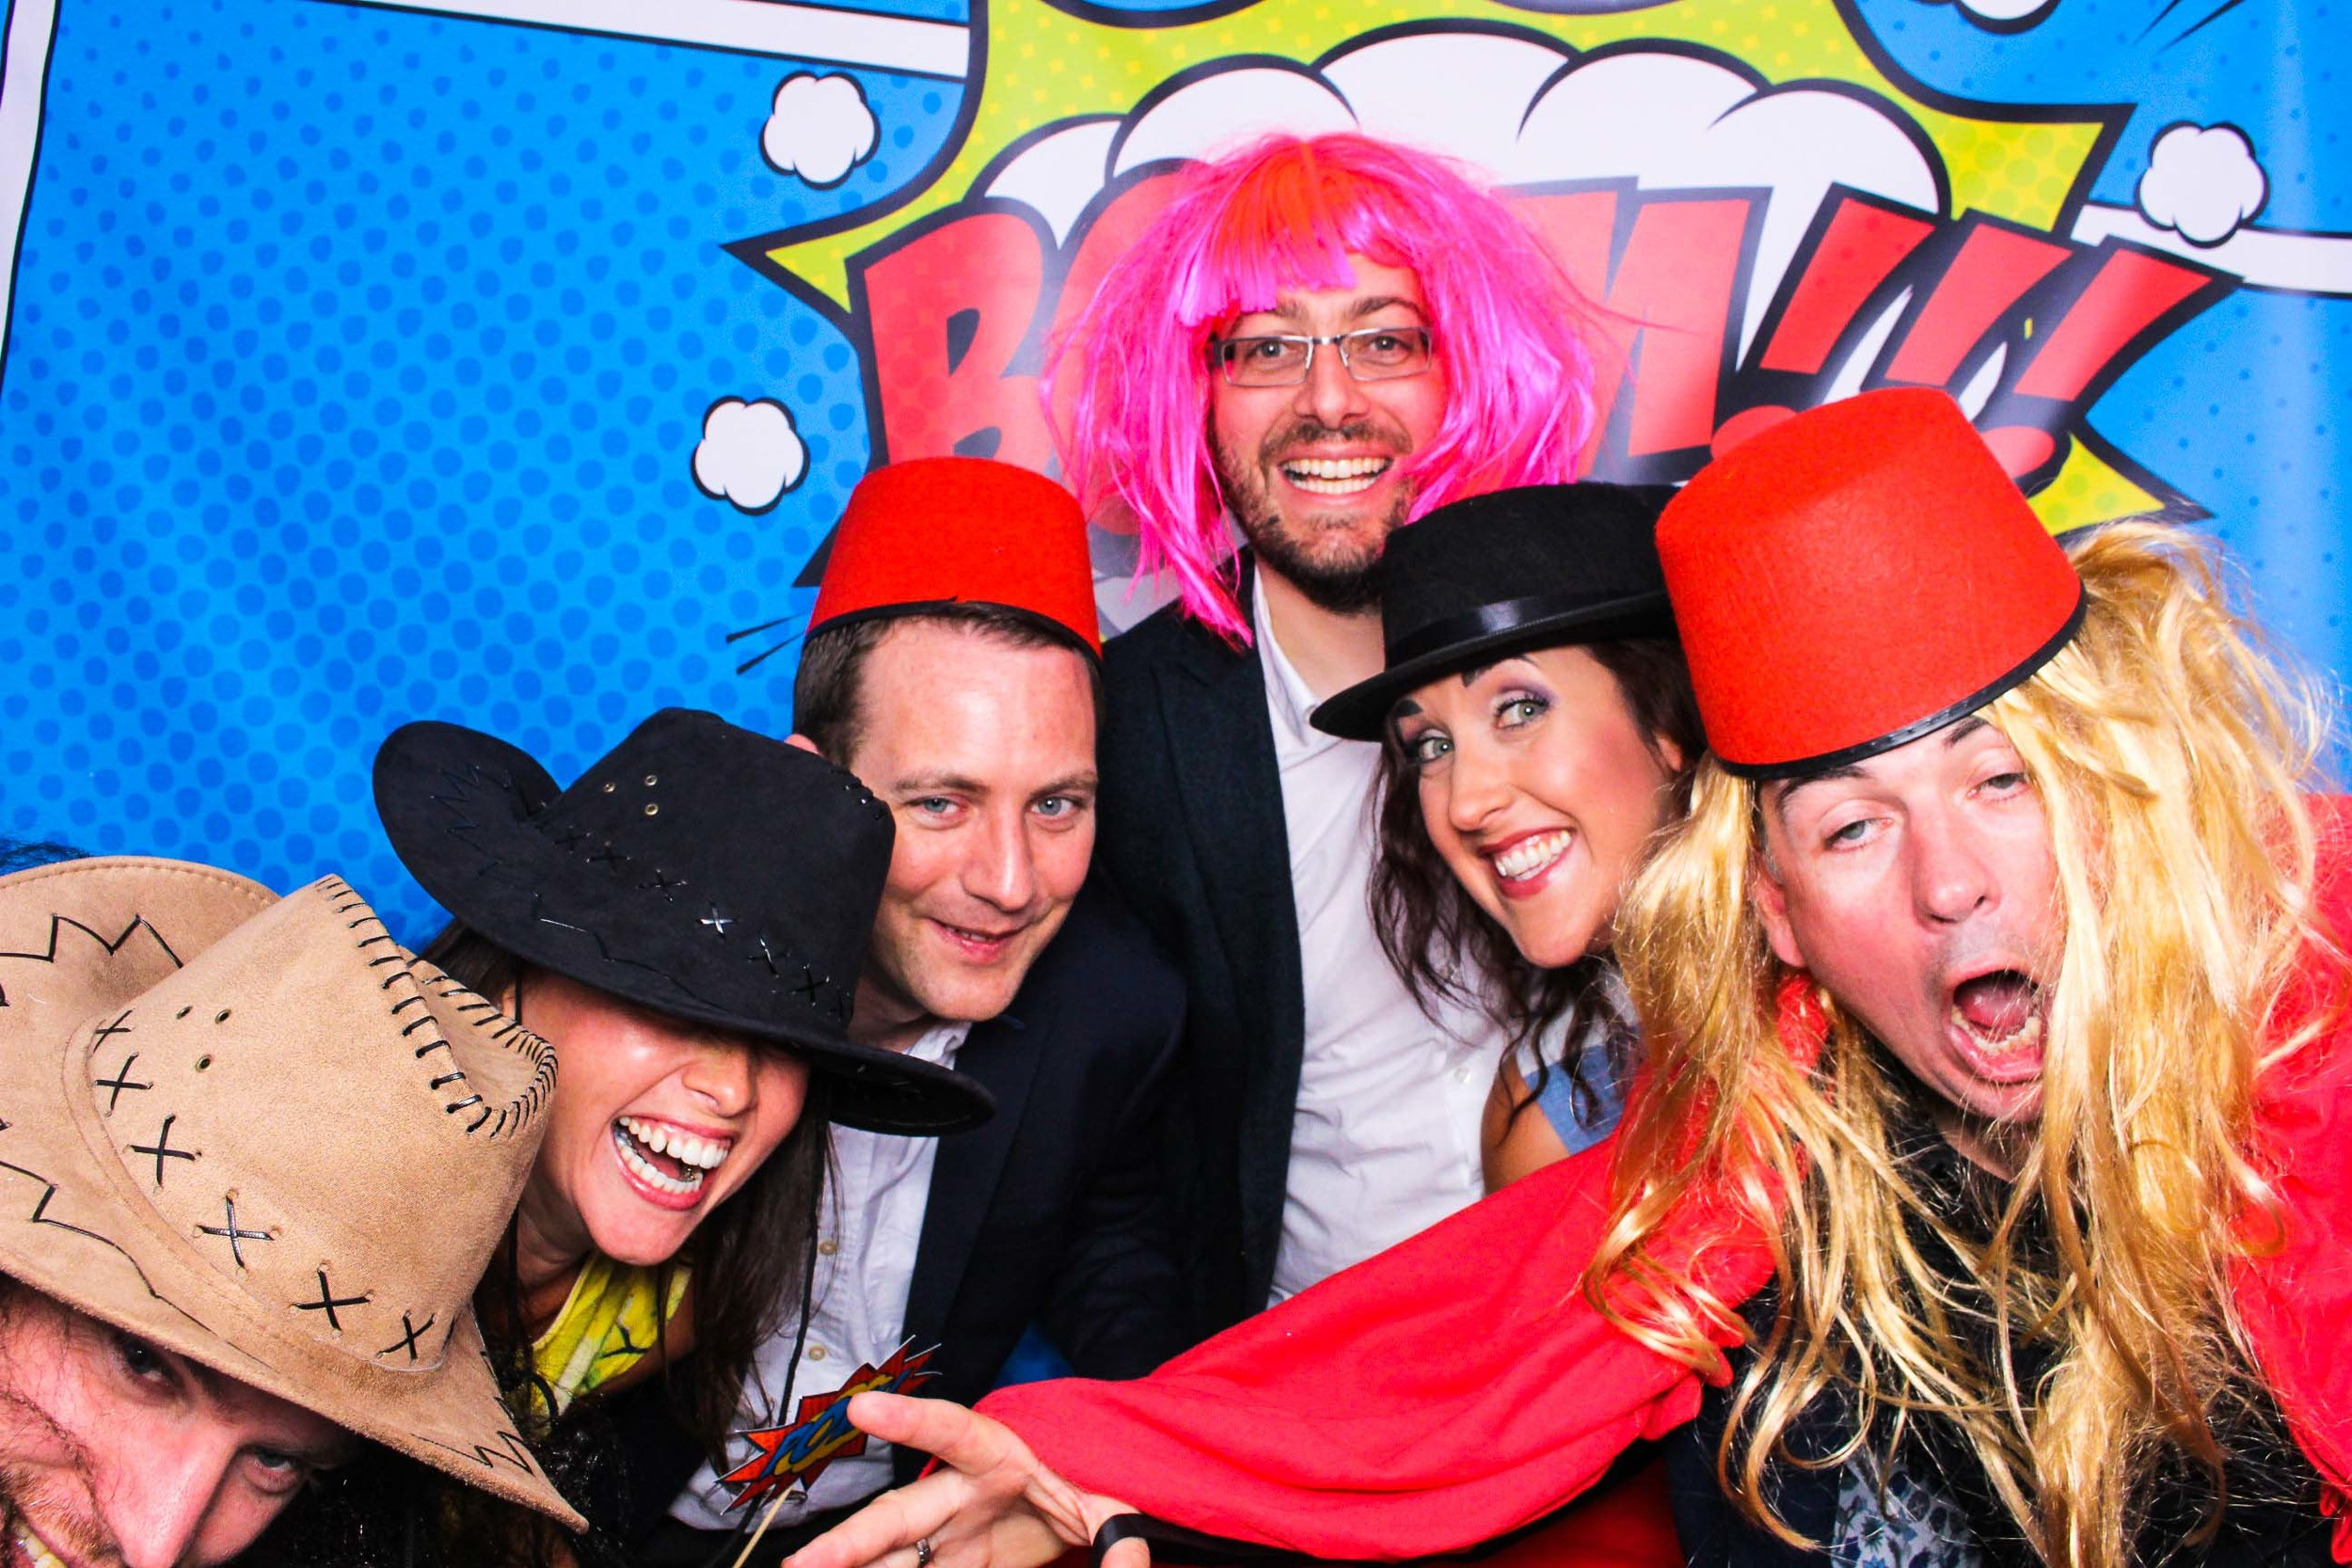 Fotoauto Photo Booth Hire - Shop Direct-254.jpg